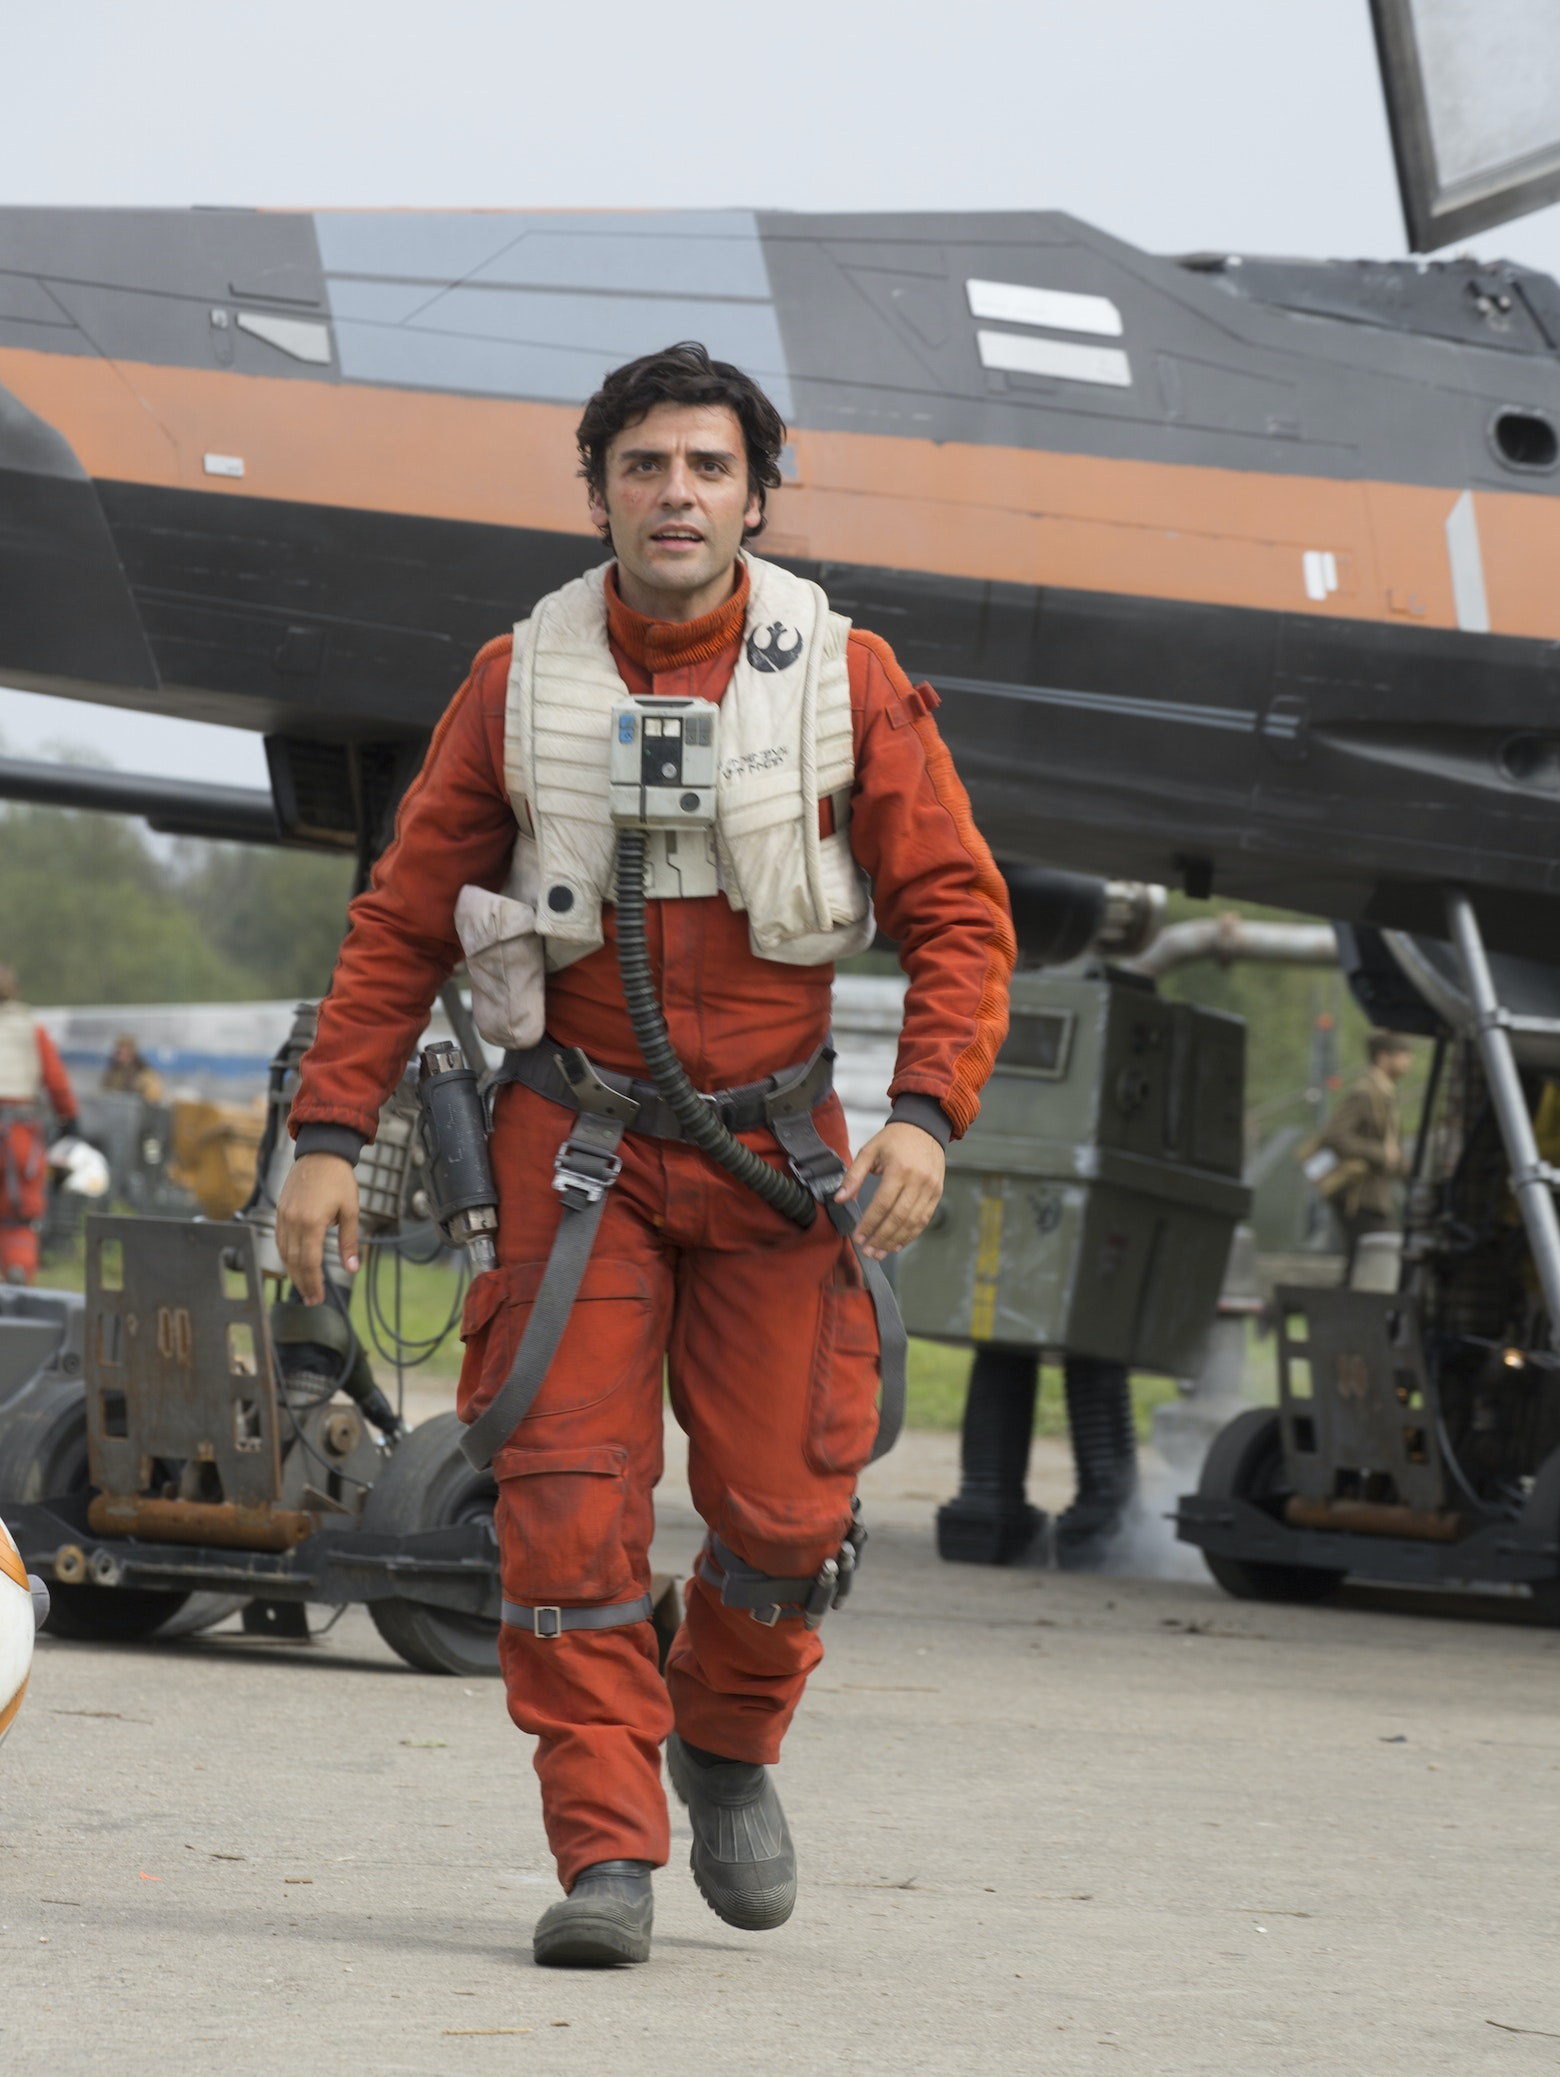 Poe Dameron and his X-wing in 'Star Wars Episode VII: The Force Awakens'